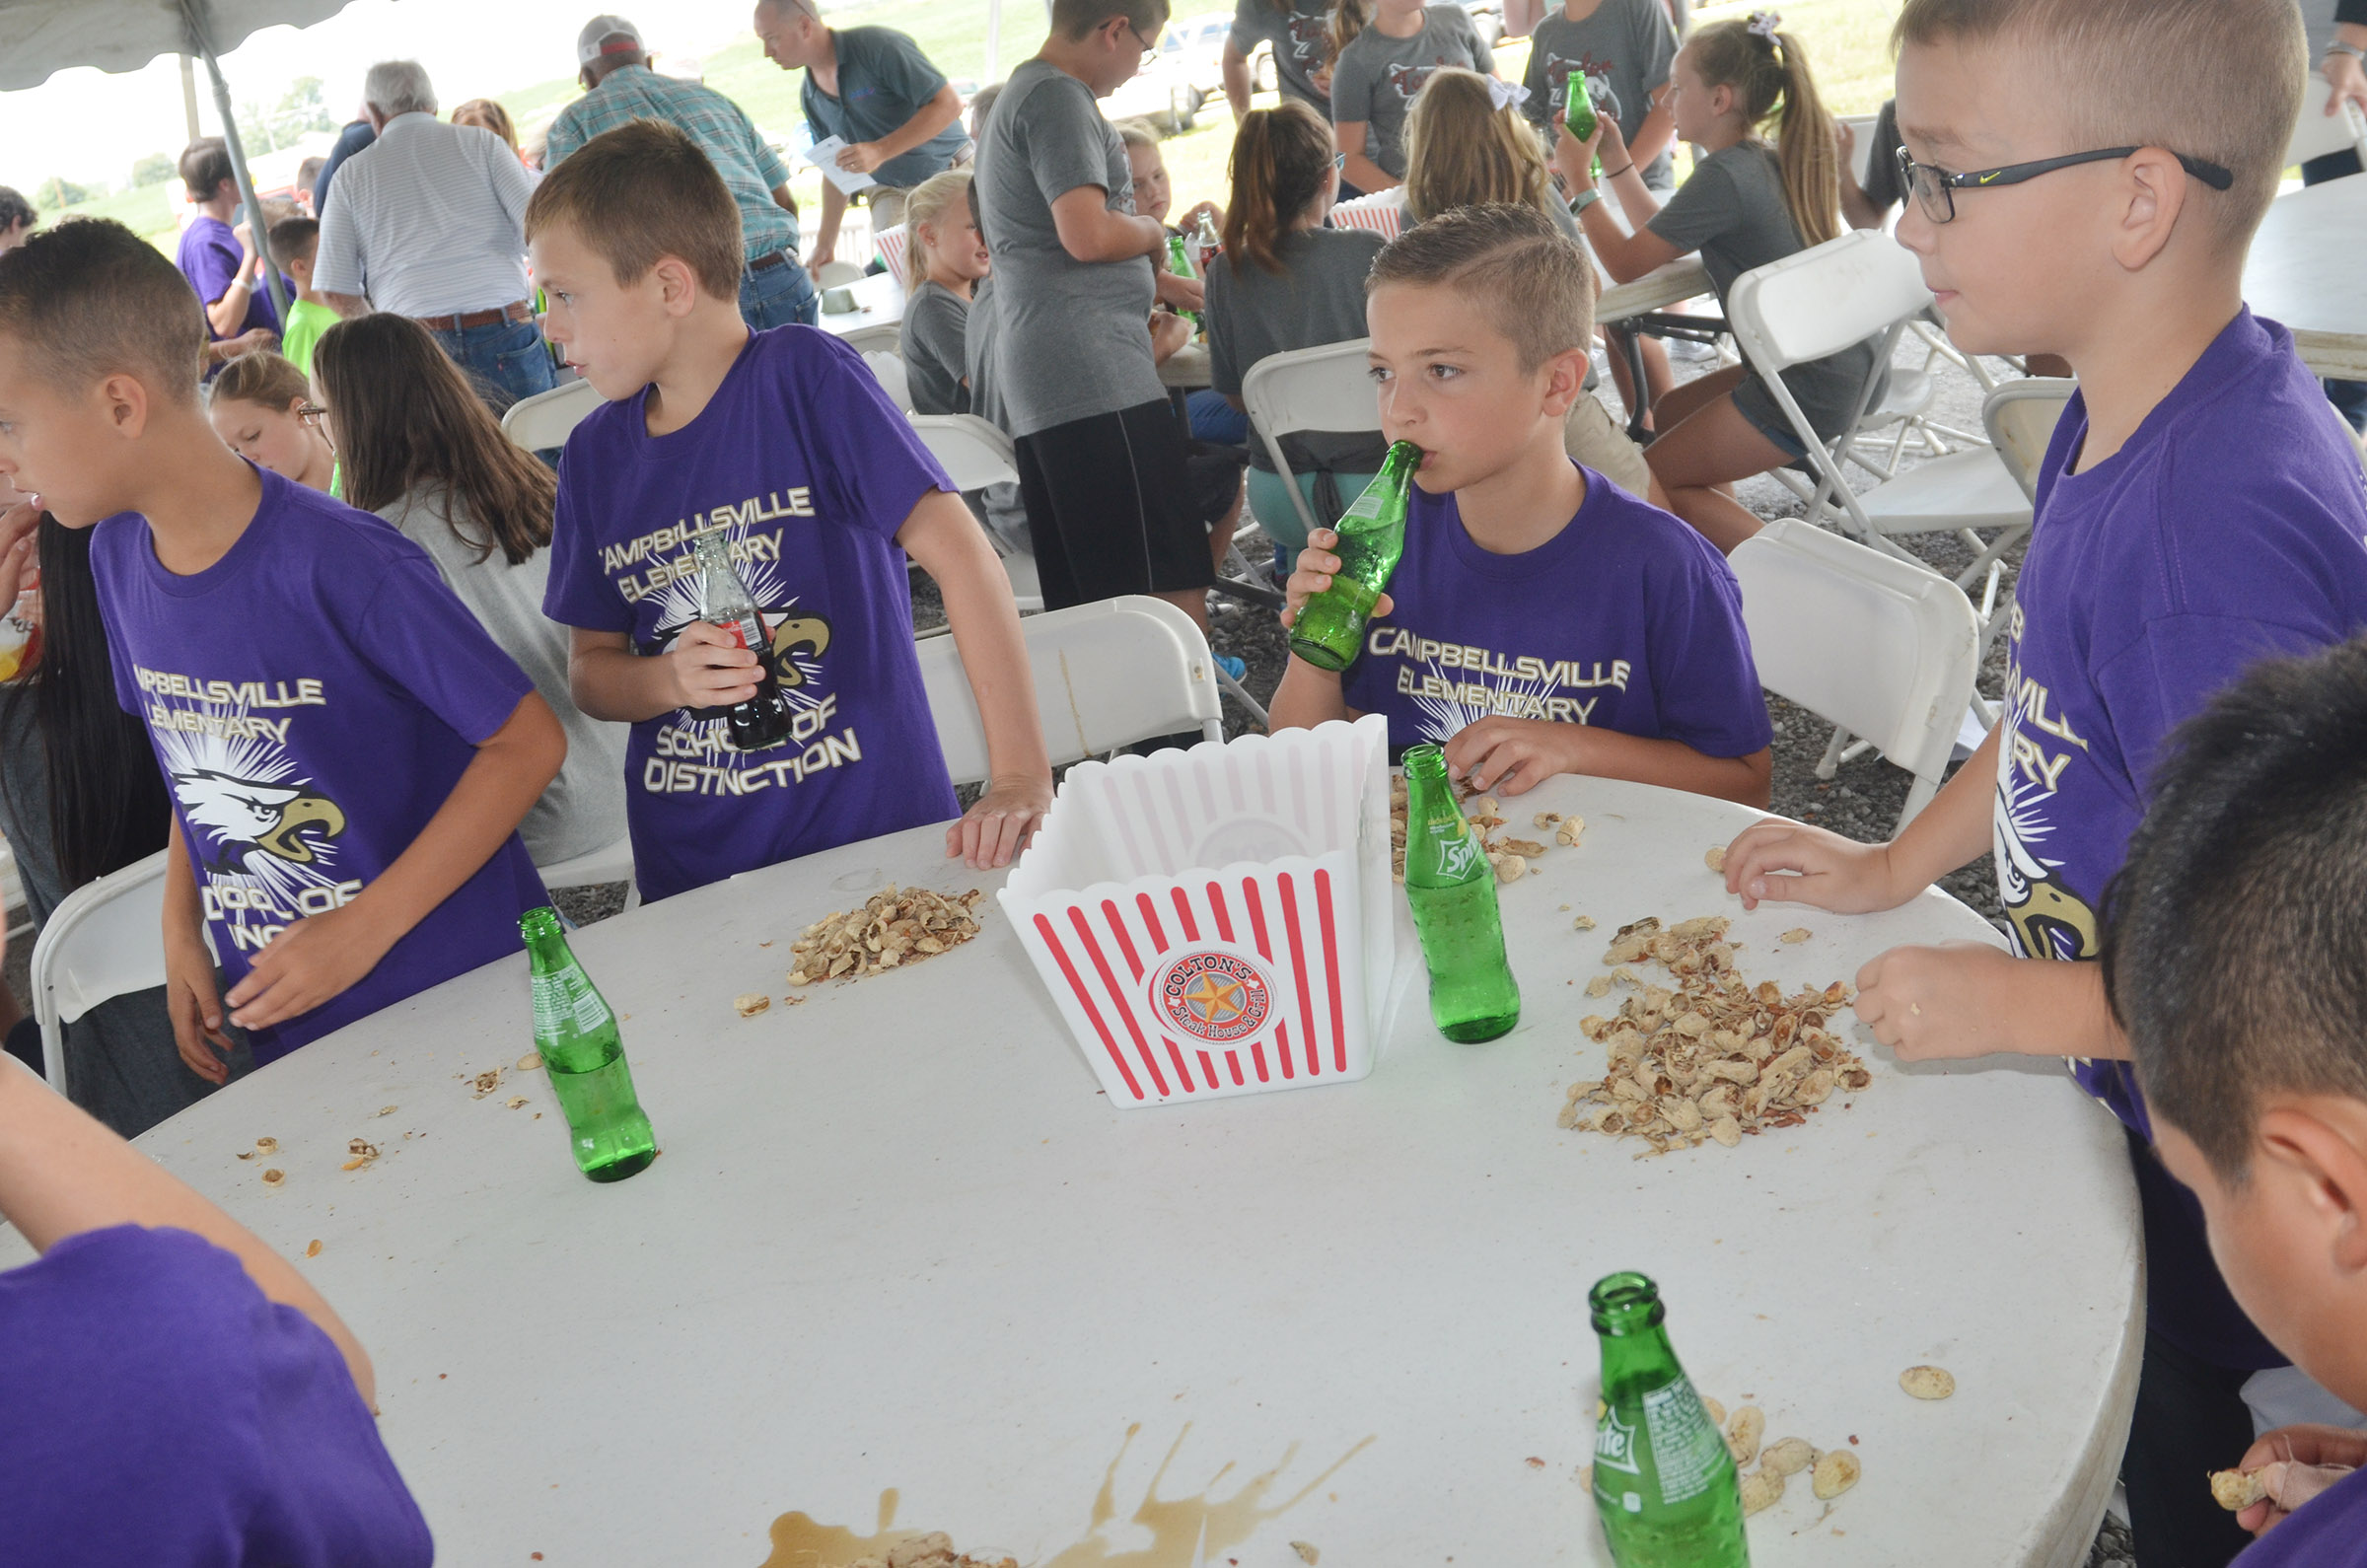 CES students, from left, fourth-graders Bradley Paris, Keaton Hord, Carson Mills and Cameron Estes enjoy peanuts and soda at the groundbreaking ceremony.